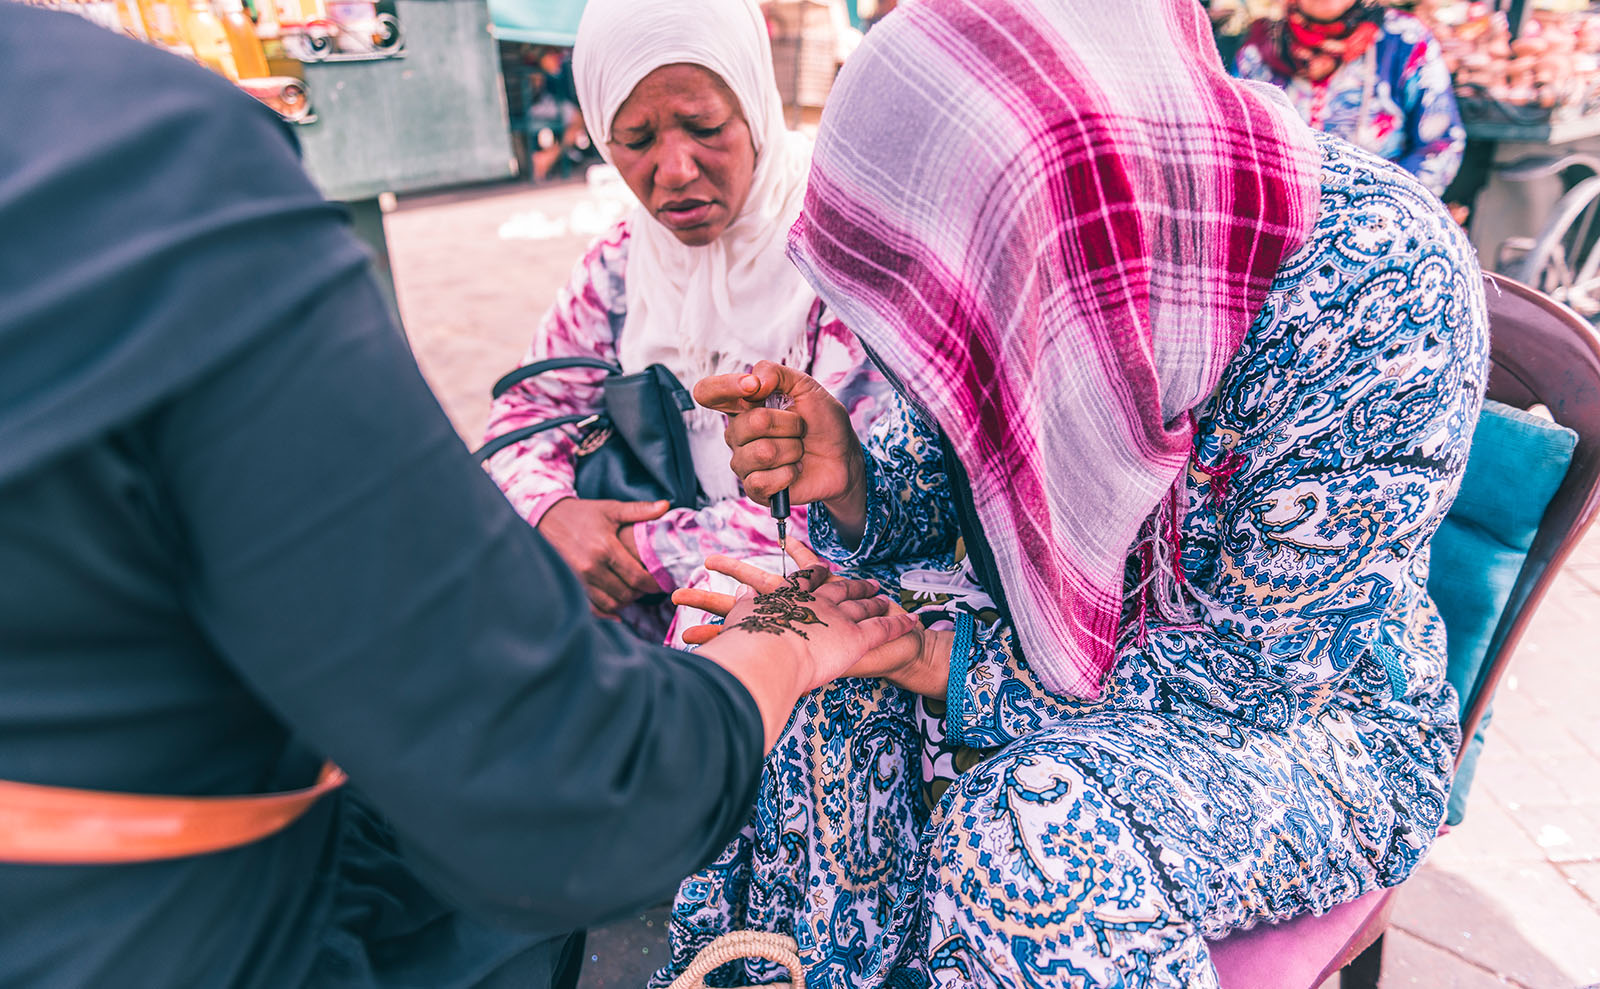 moroccan artist drawing a henna tattoo on a hand